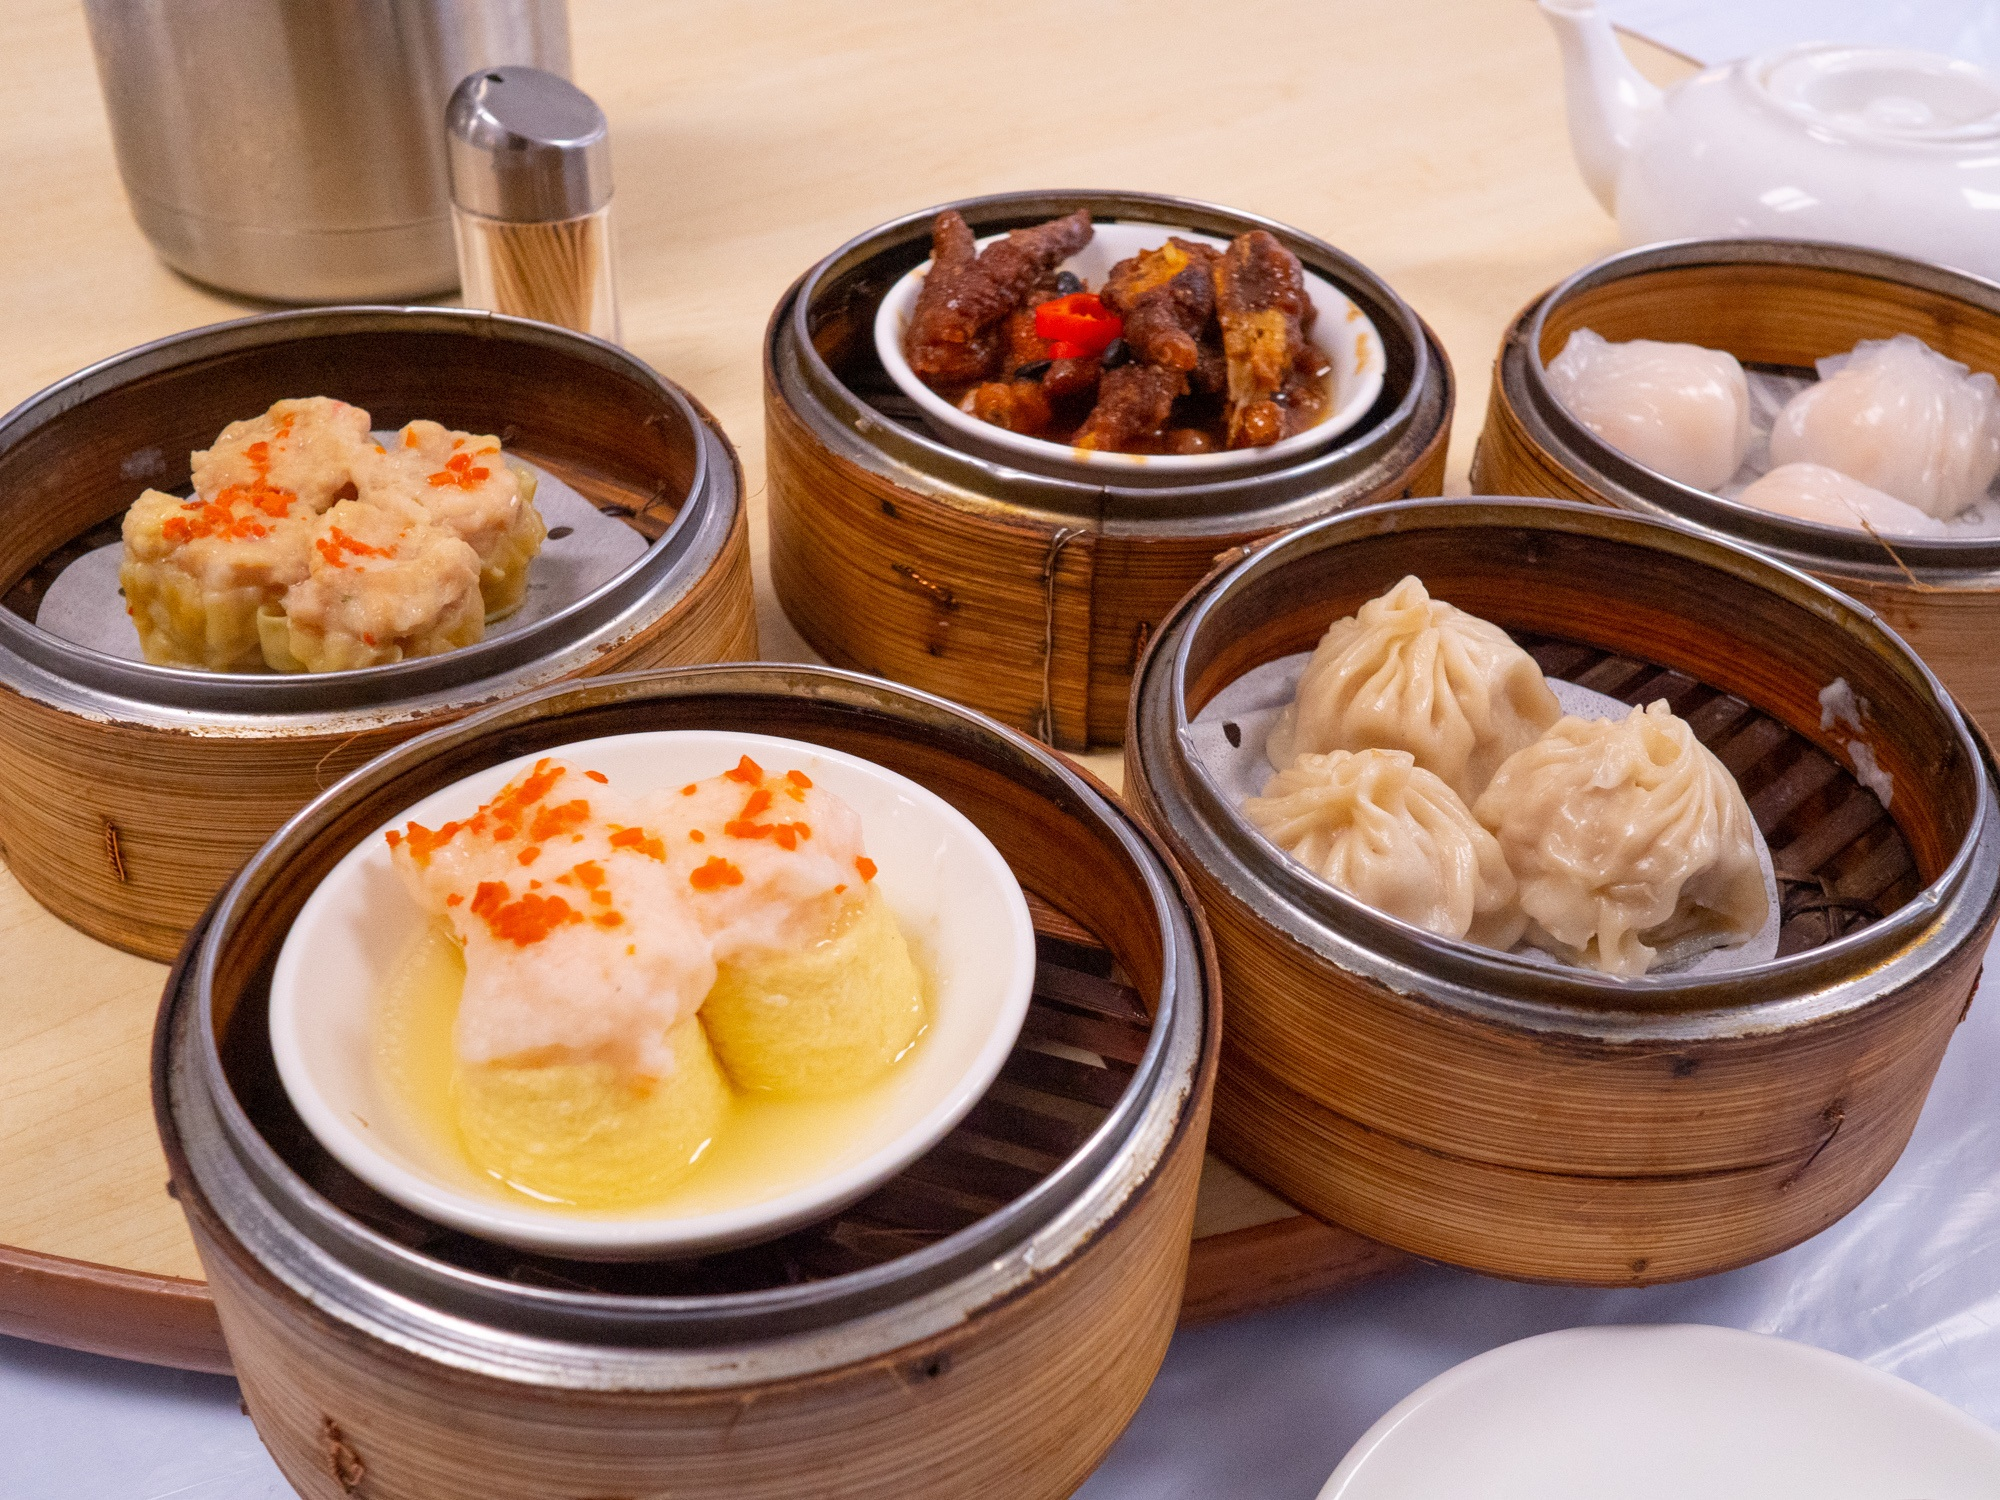 Shown here are some of the halal dim sum at the mosque in wan chai.